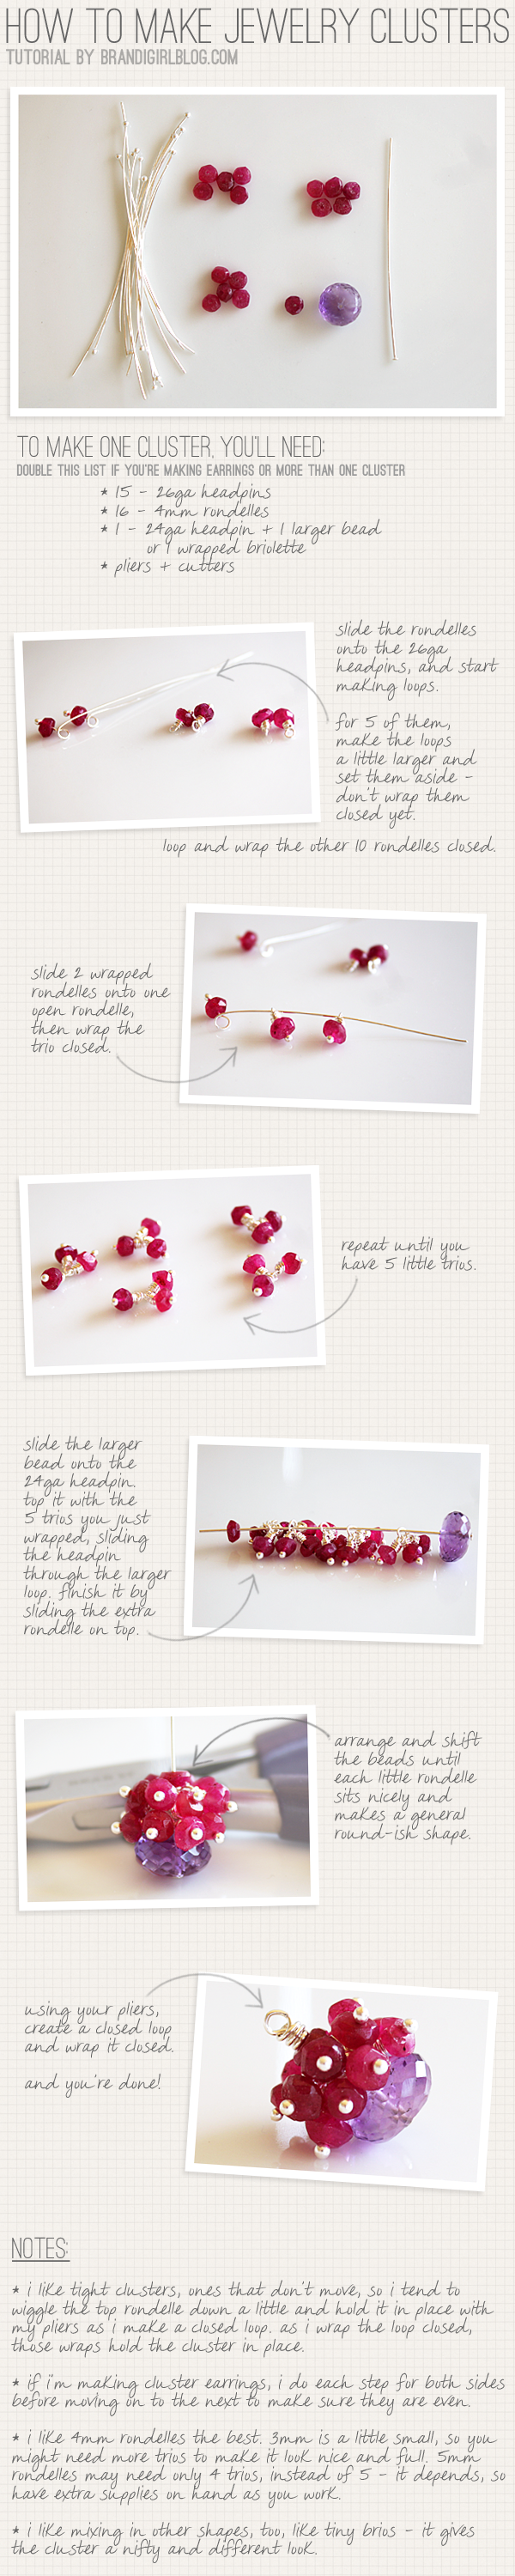 I shared my secret to making jewelry clusters!